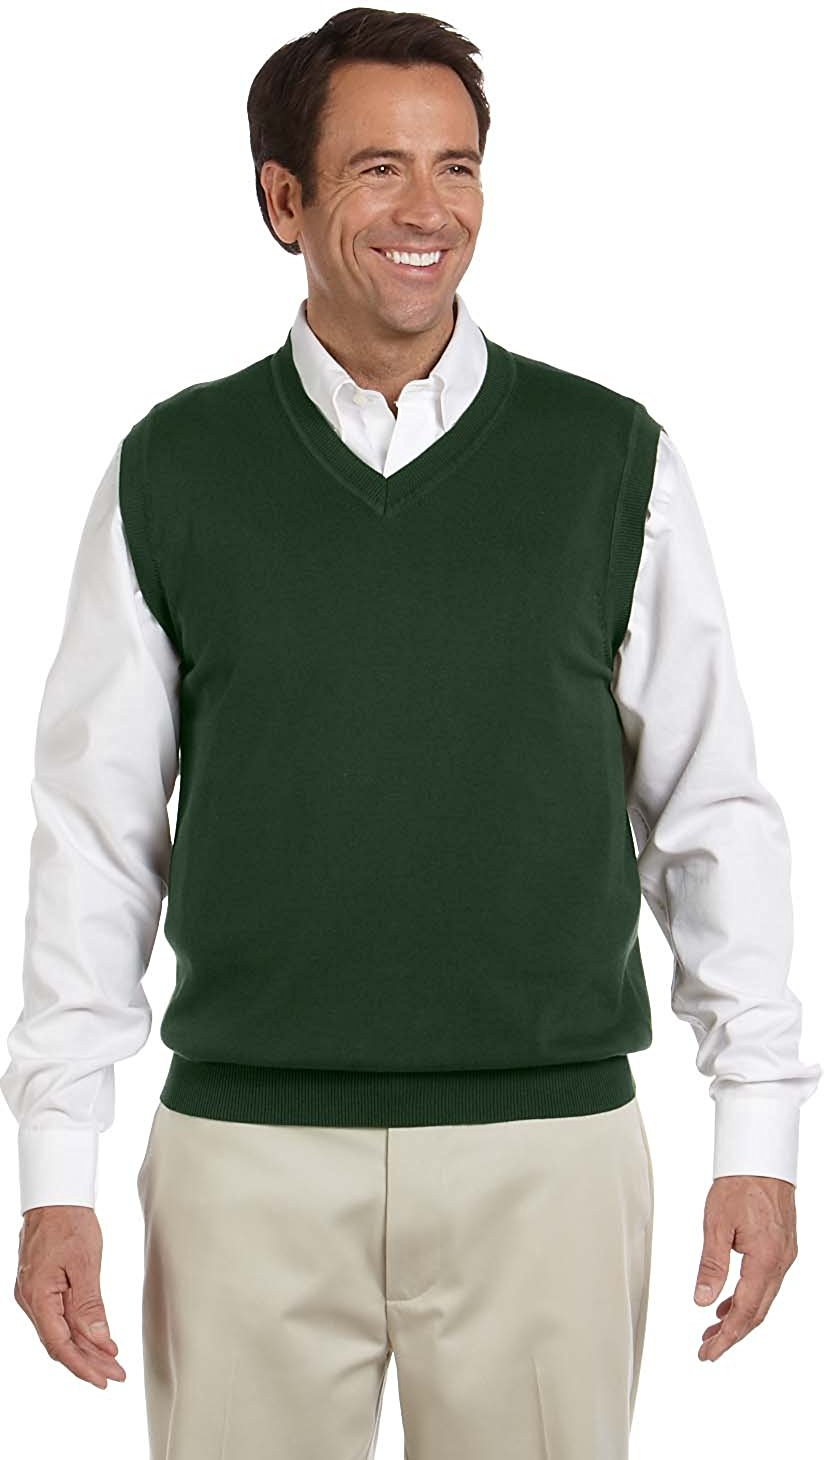 vest for men devon u0026 jones menu0027s v-neck sweater vest at amazon menu0027s clothing store: phmtnuy